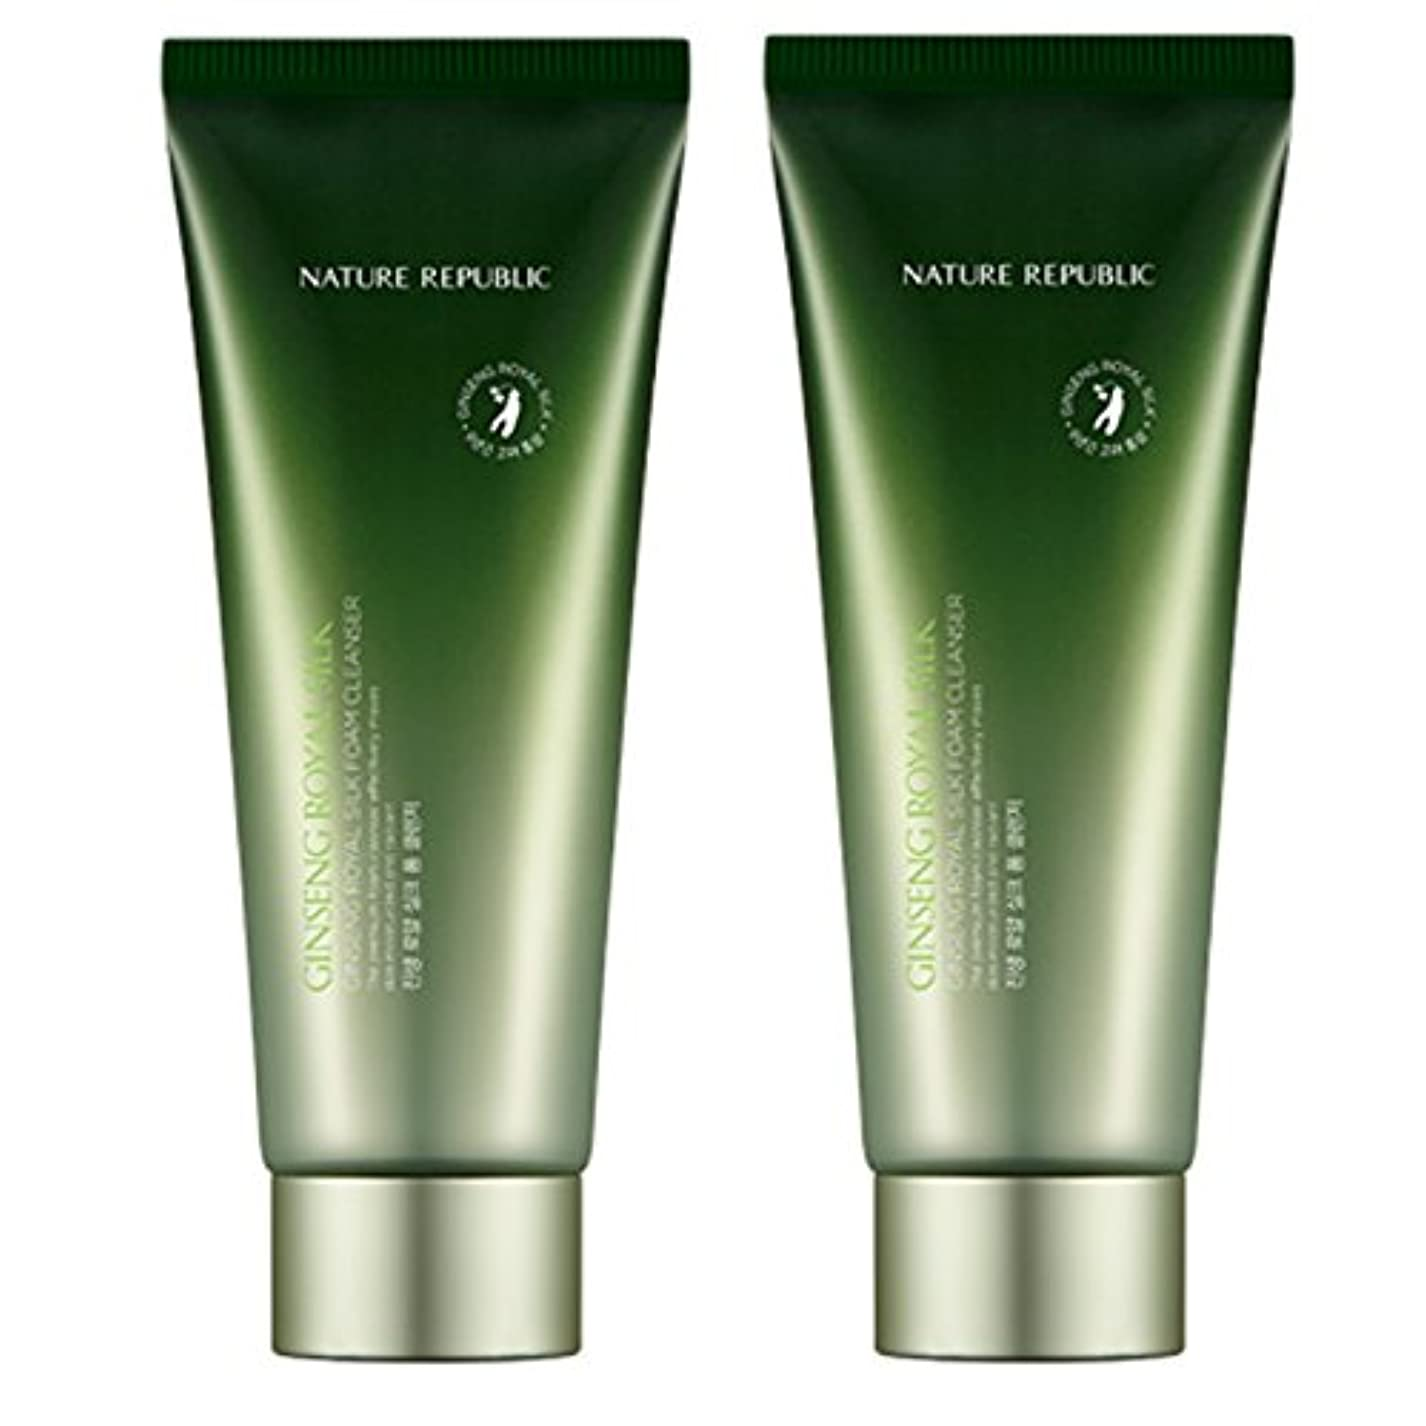 引く不安定賠償[韓国 Nature Republic] Nature Republic GINSENG ROYAL SILK Foam洗顔料 150 ml1+1クレンジング (Nature Republic GINSENG ROYAL...